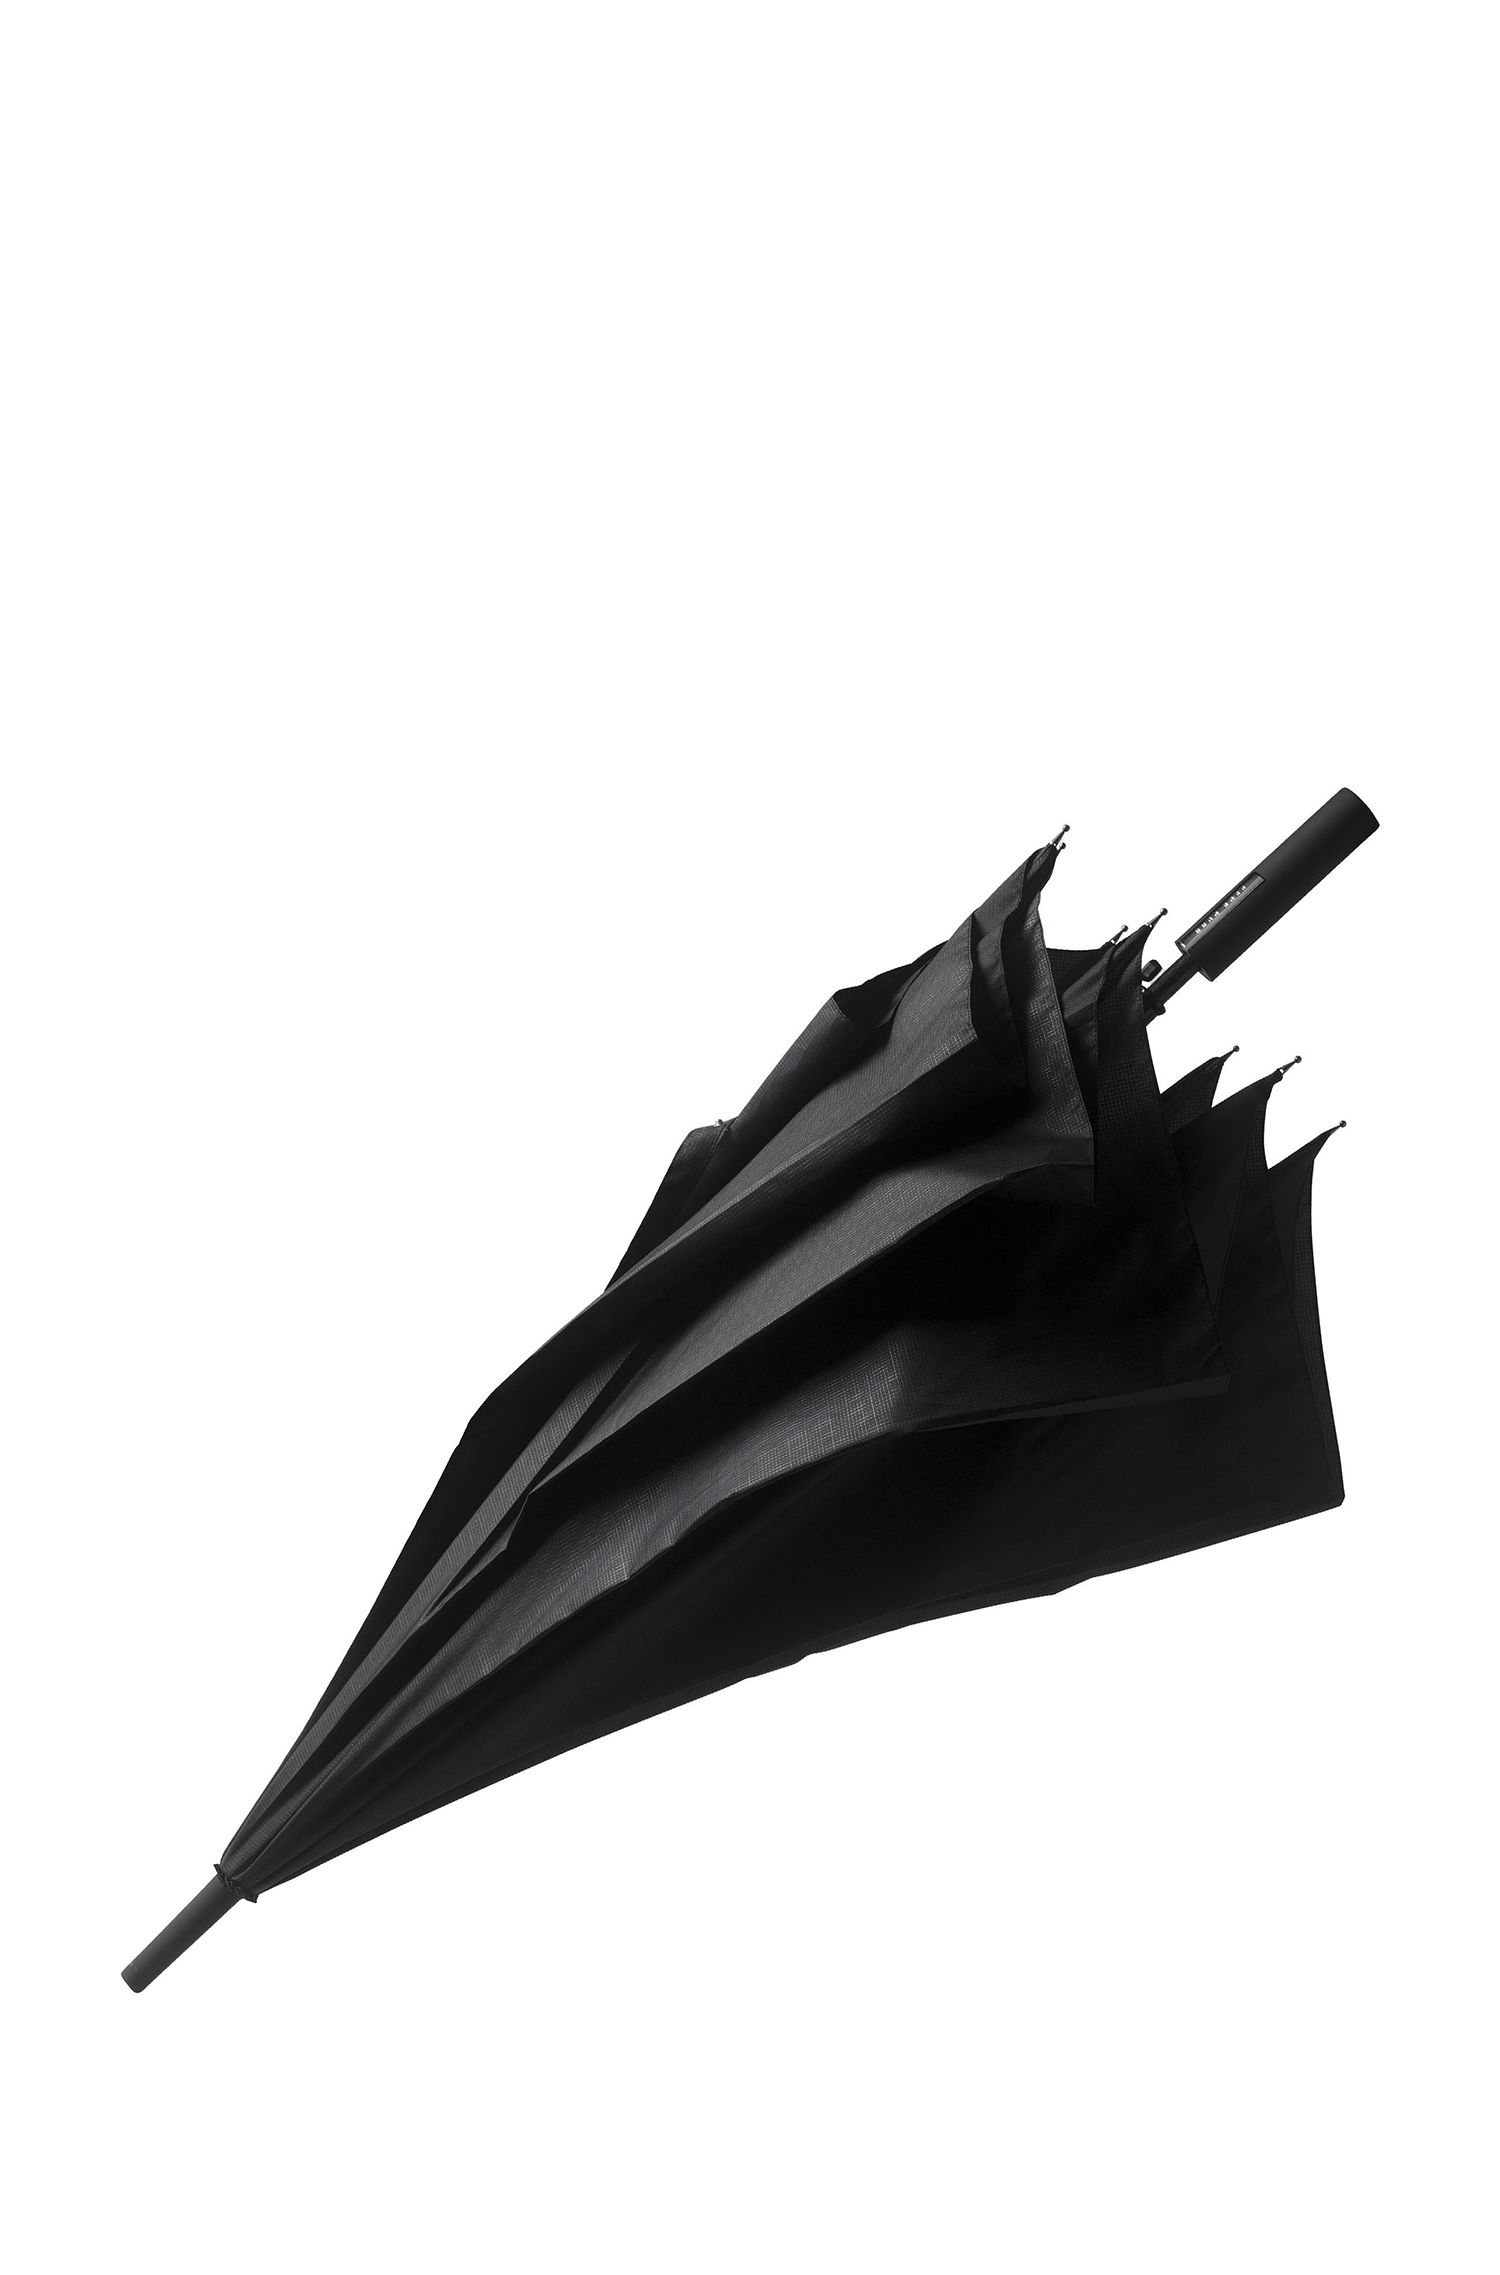 Black patterned umbrella with automatic trigger